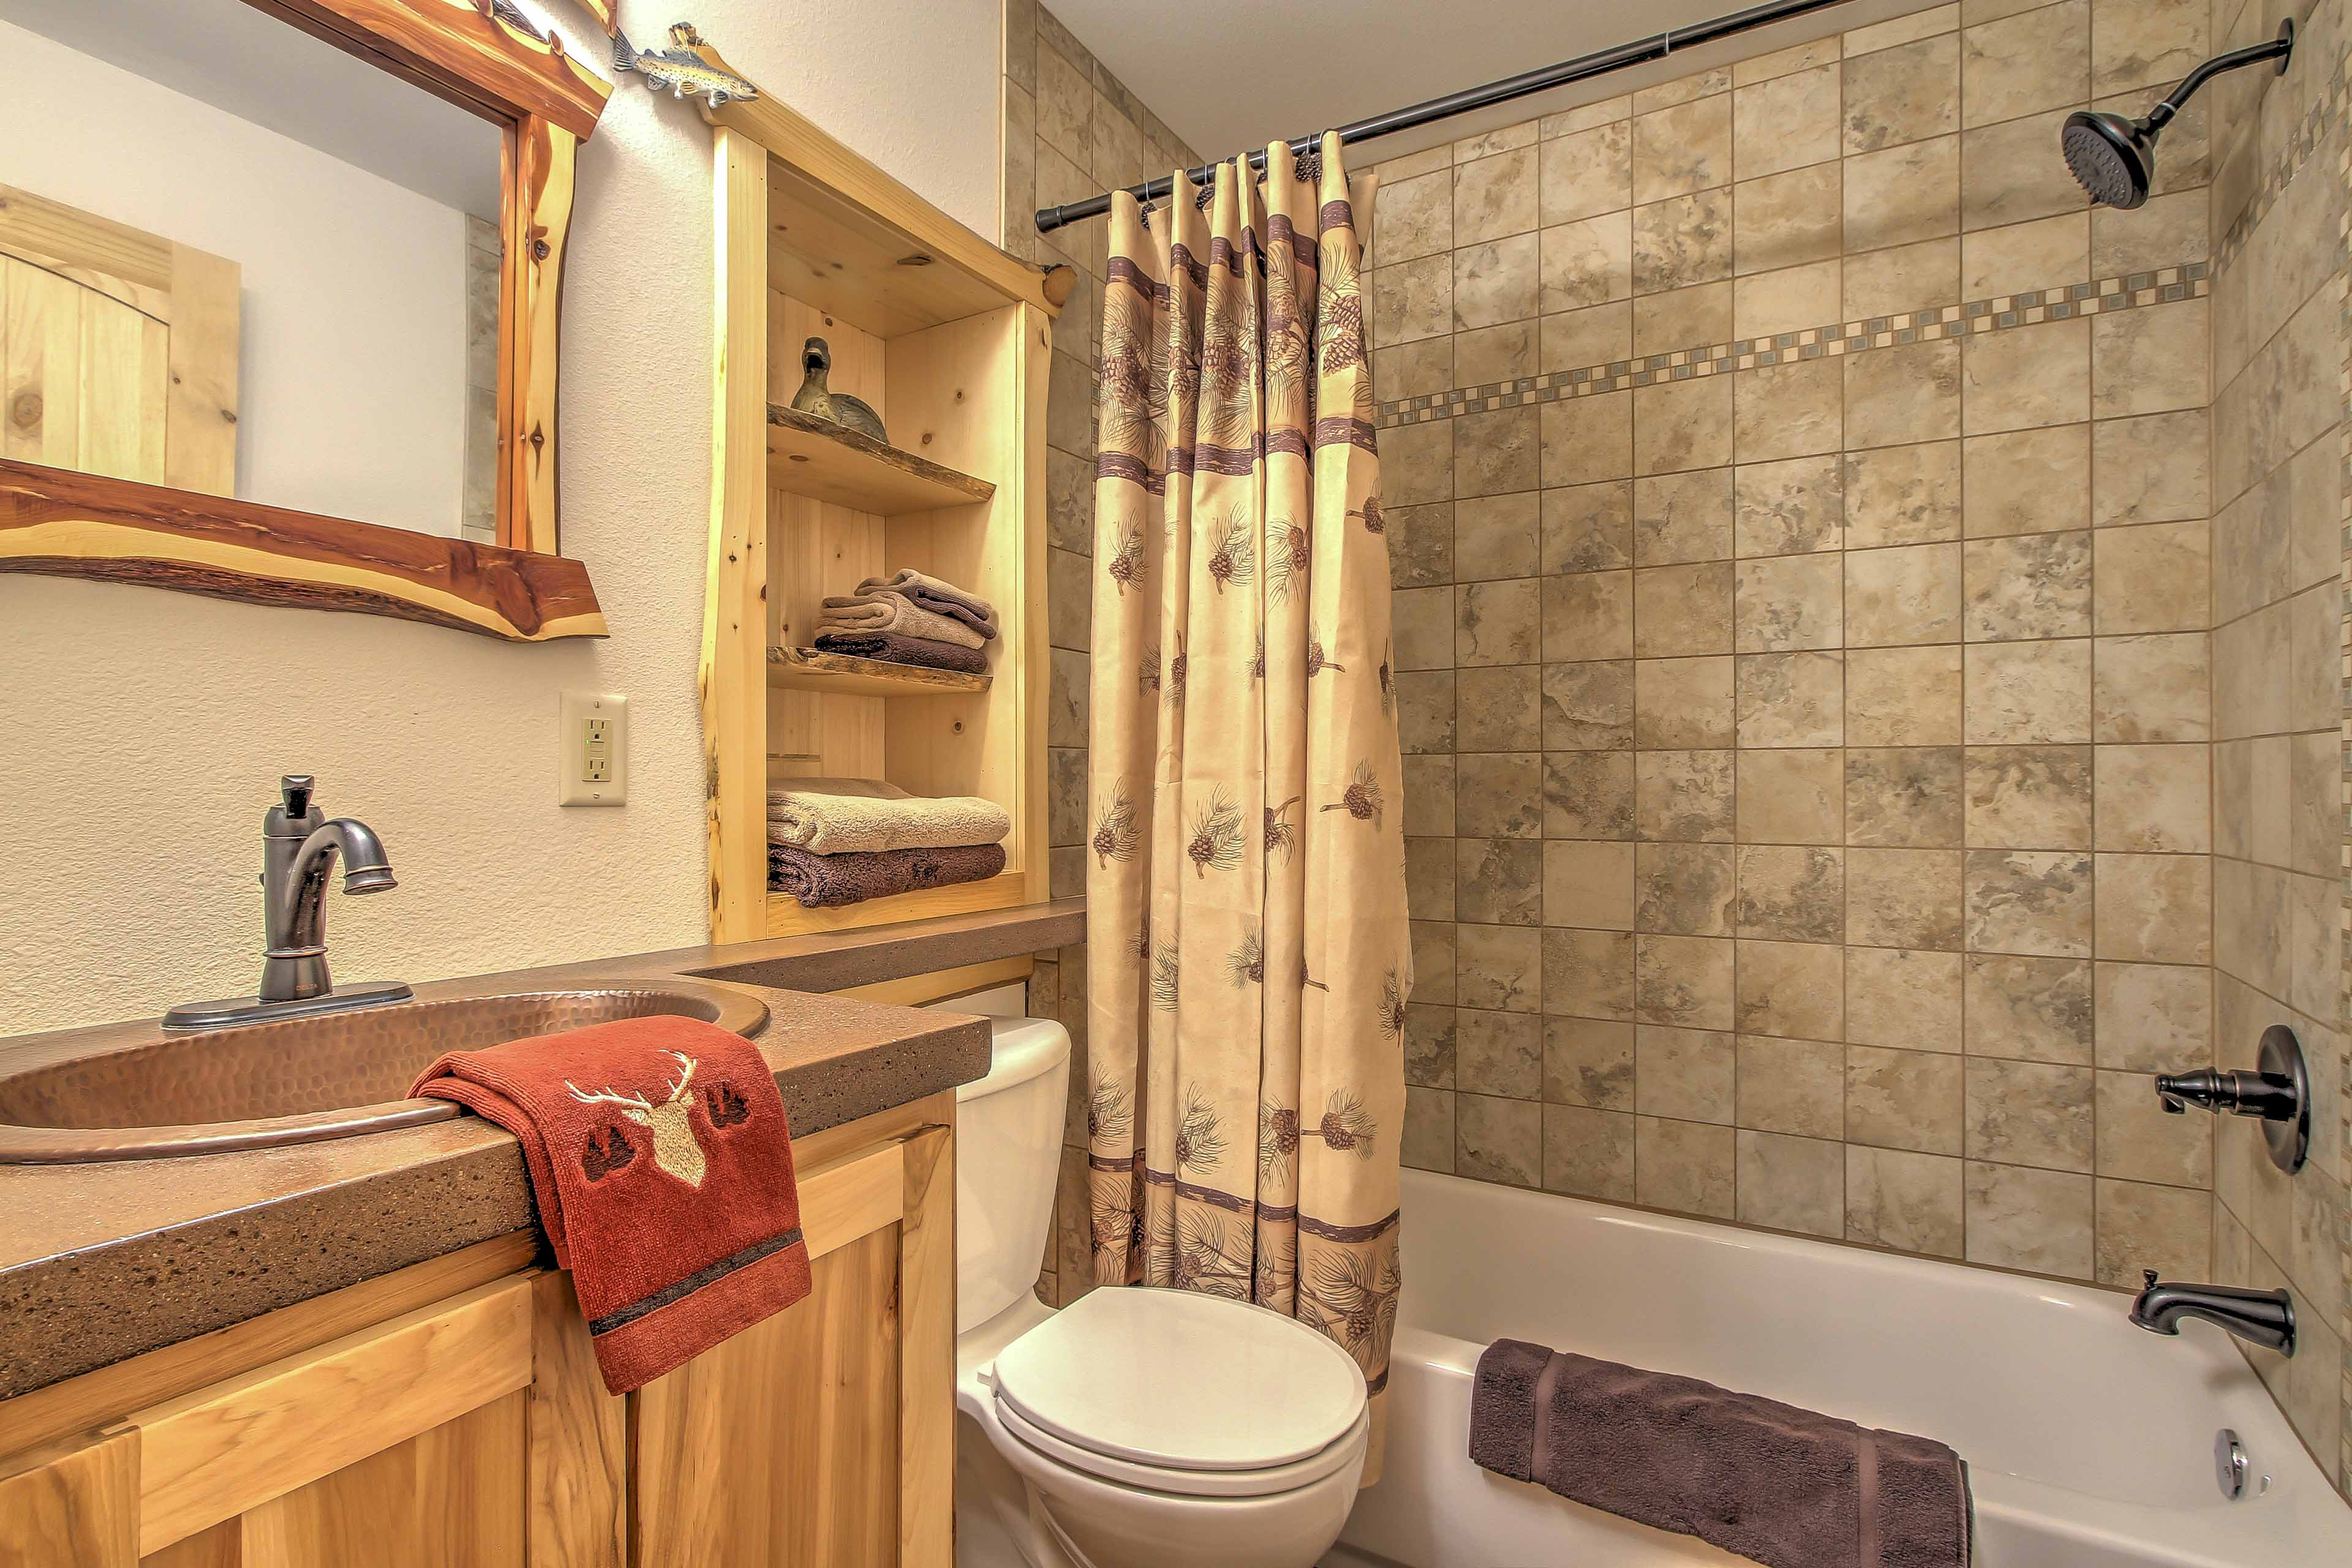 Get ready for your day on the river in this full bathroom with shower/tub.